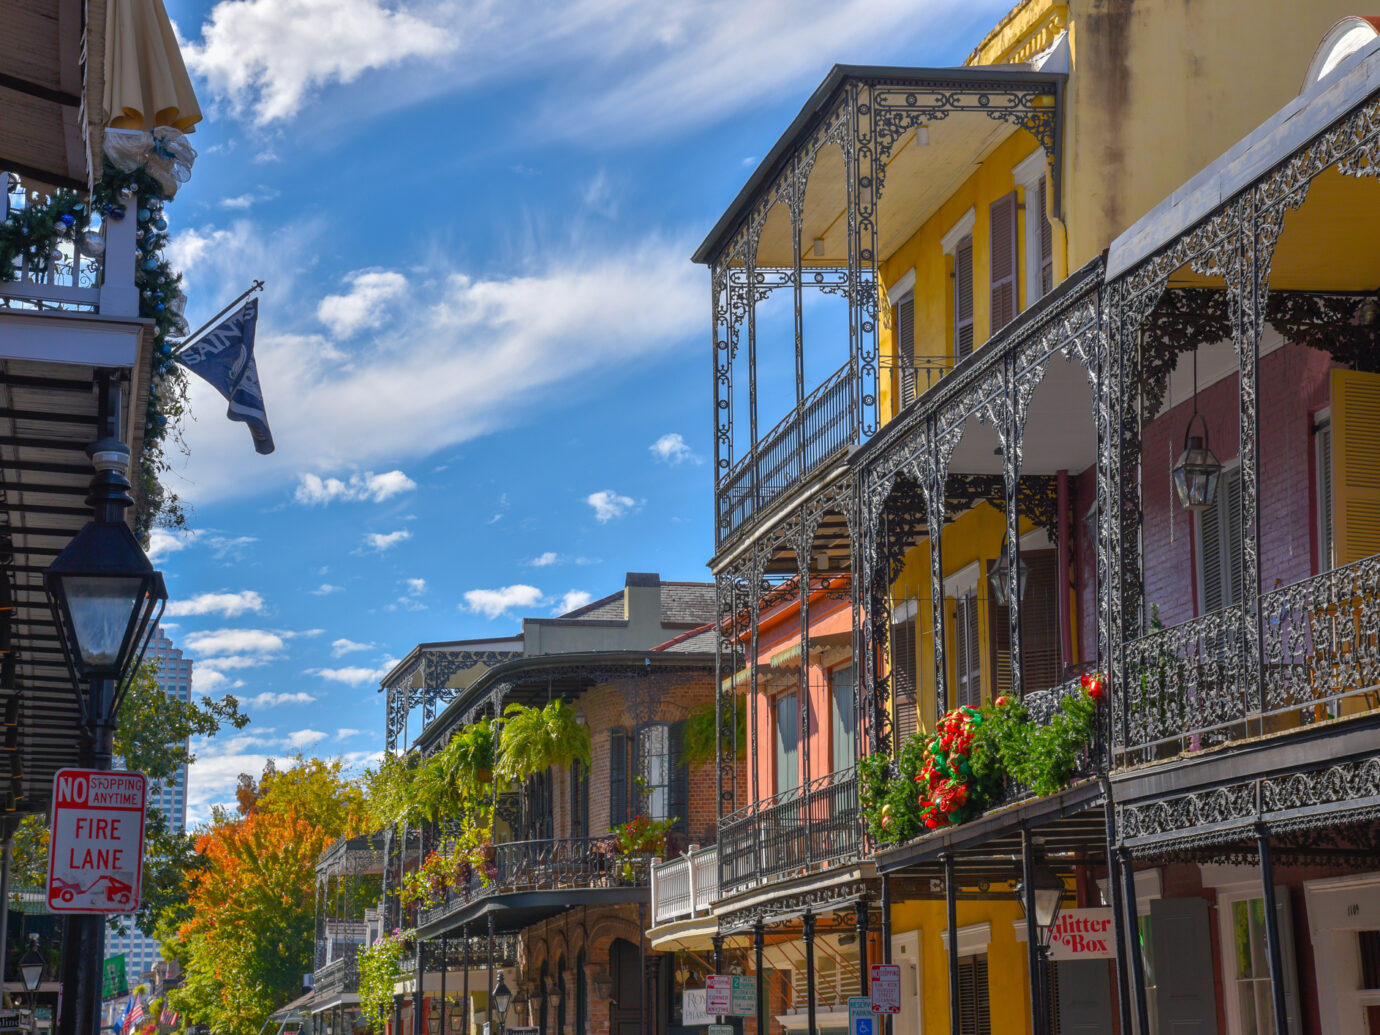 Typical houses in the French quarter of New Orleans (USA)